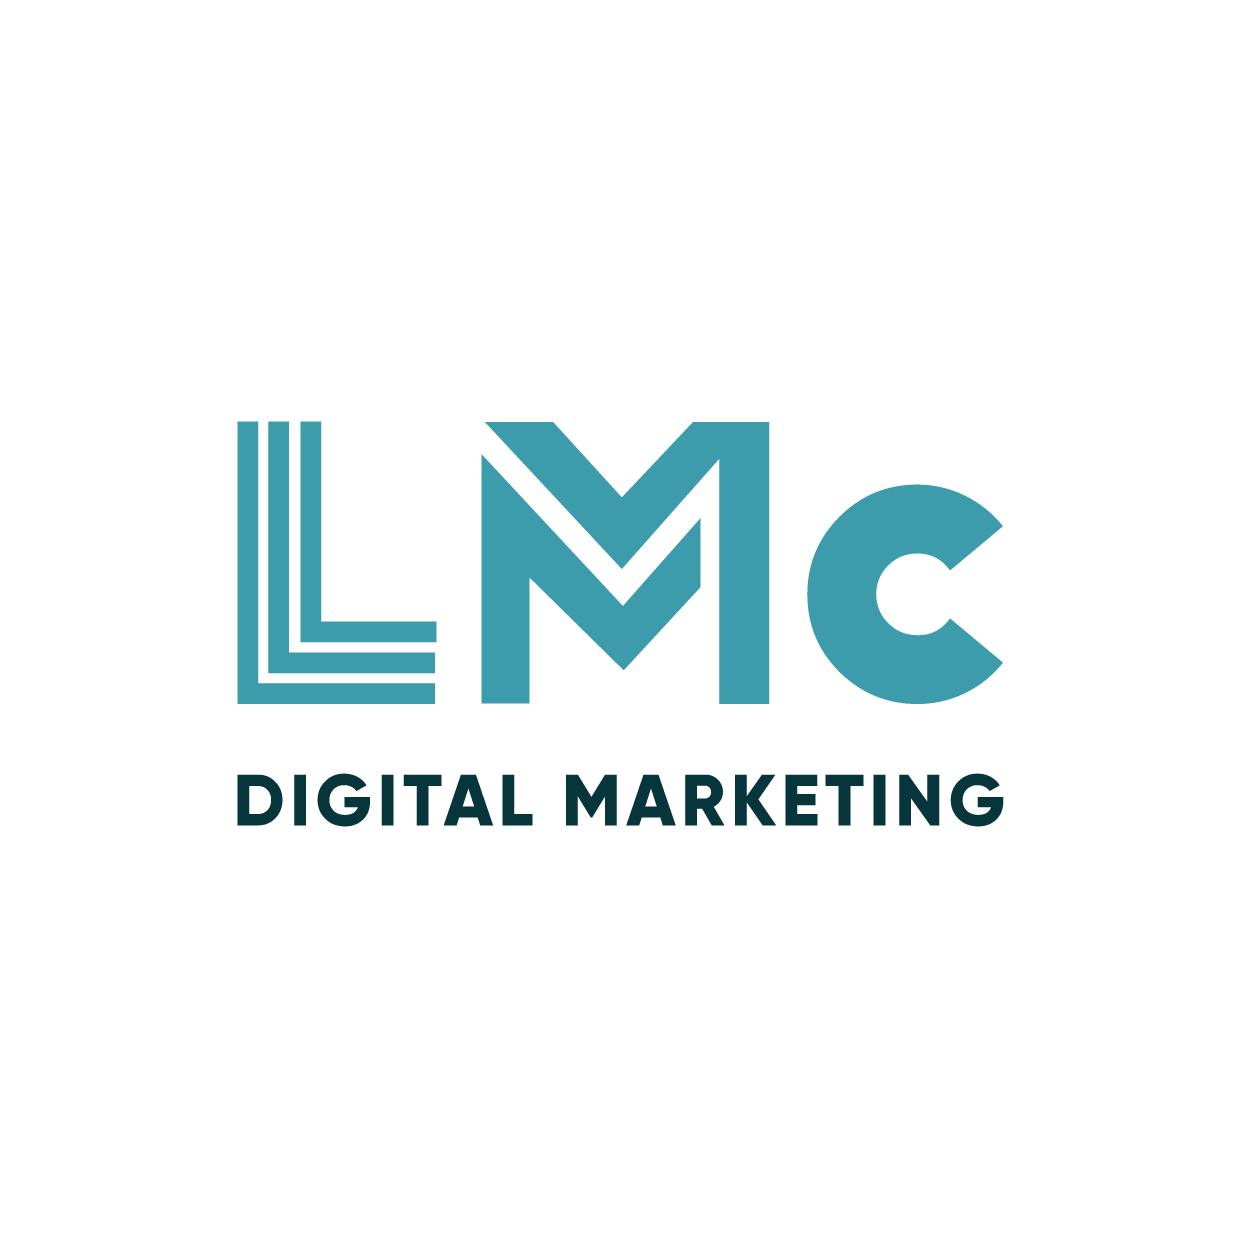 LMc Digital Marketing